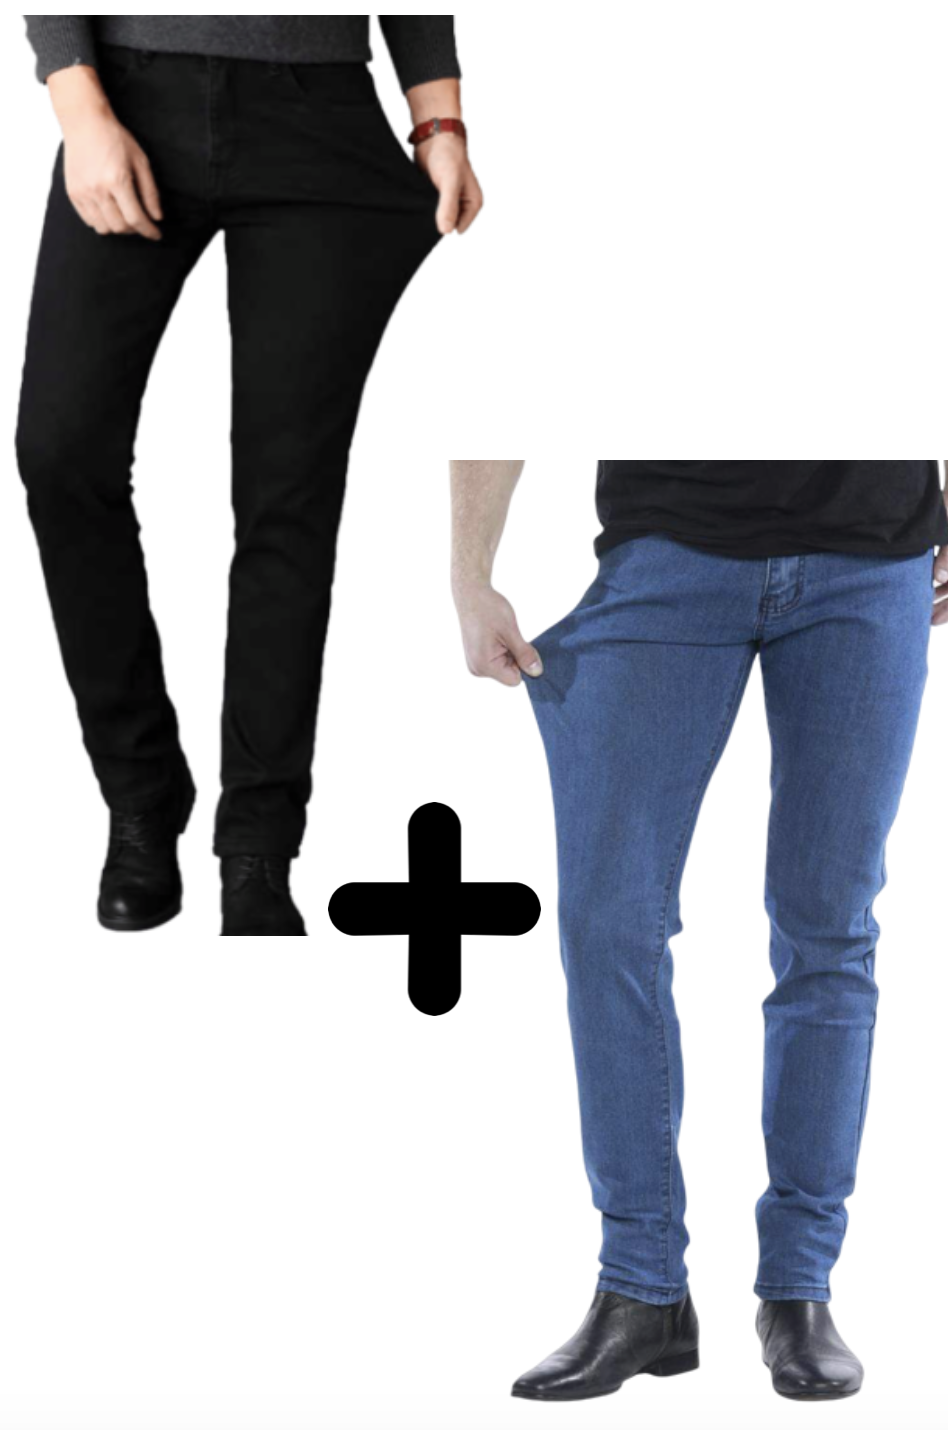 2 x The Perfect Jeans: Denim Blue + Black